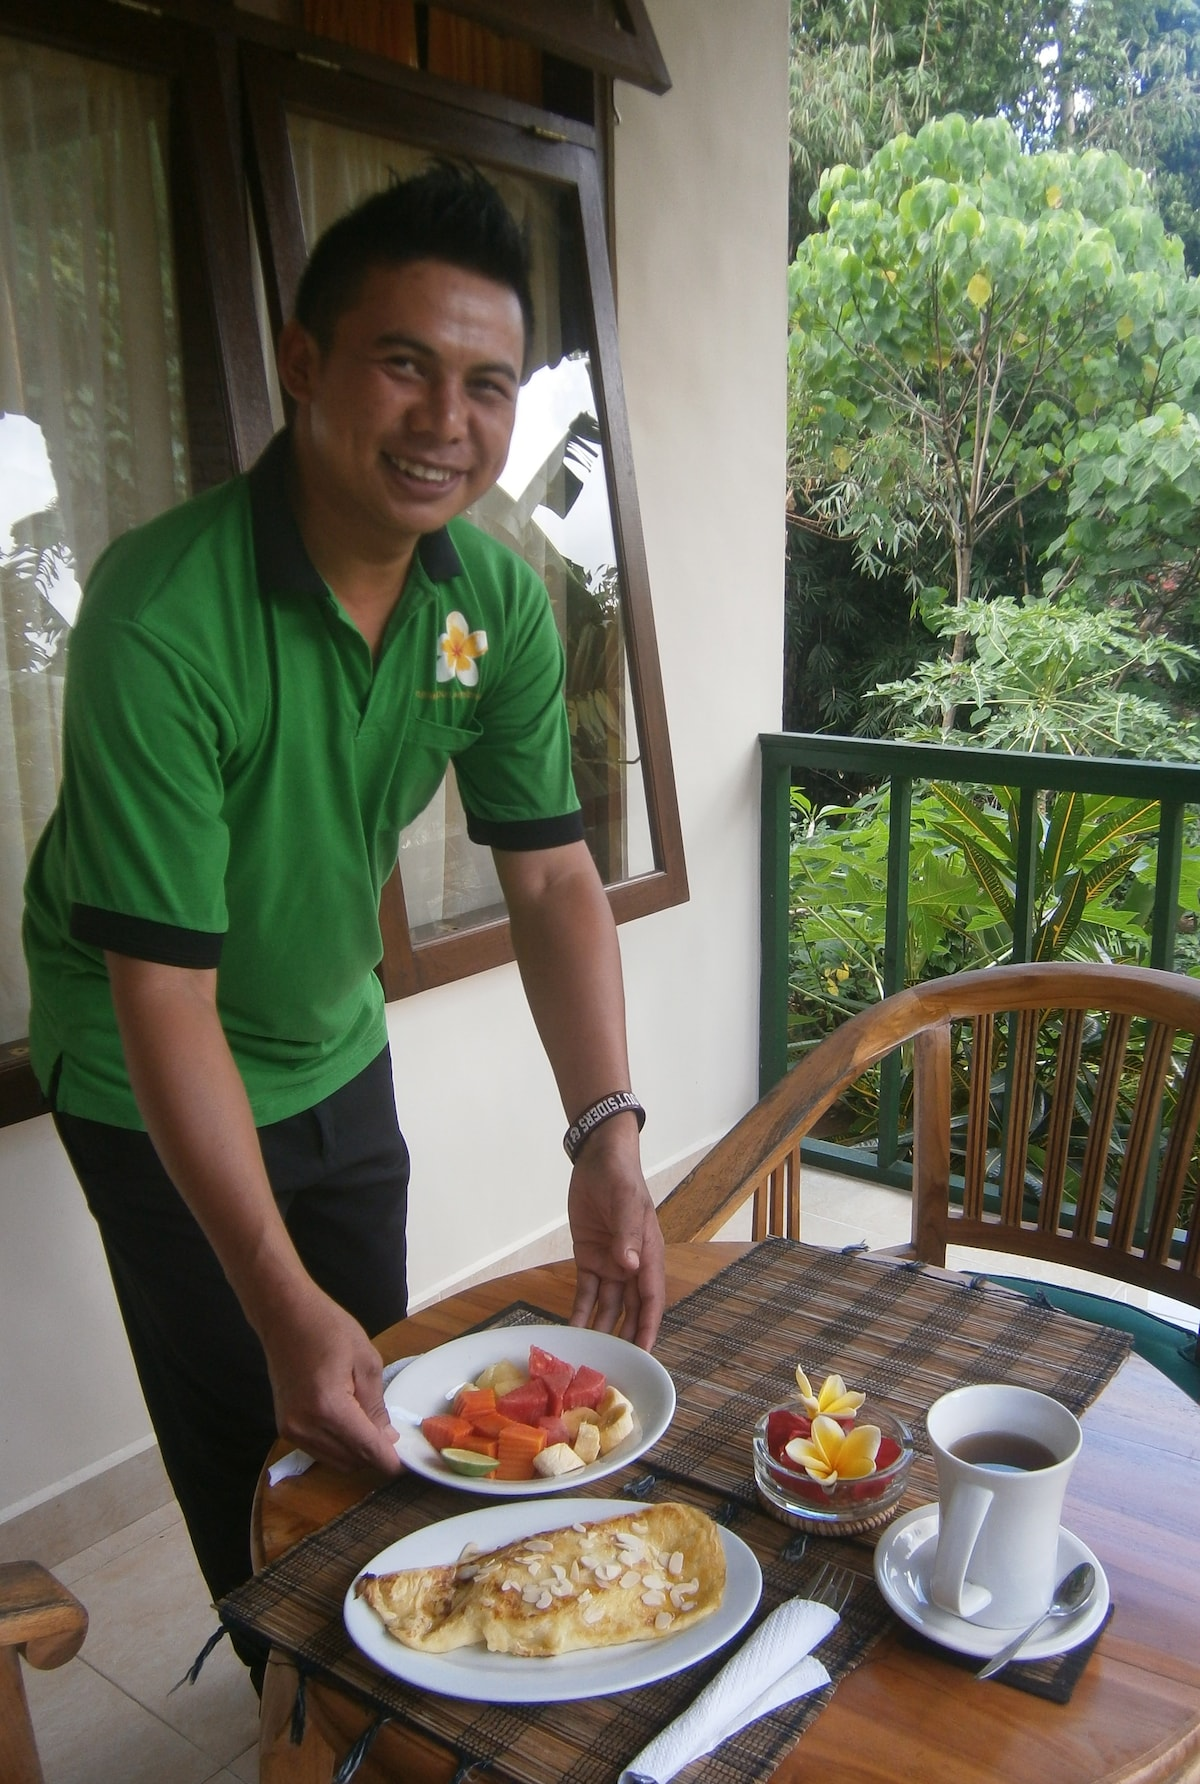 Breakfast on your balcony - Gede makes a fabulous banana pancake